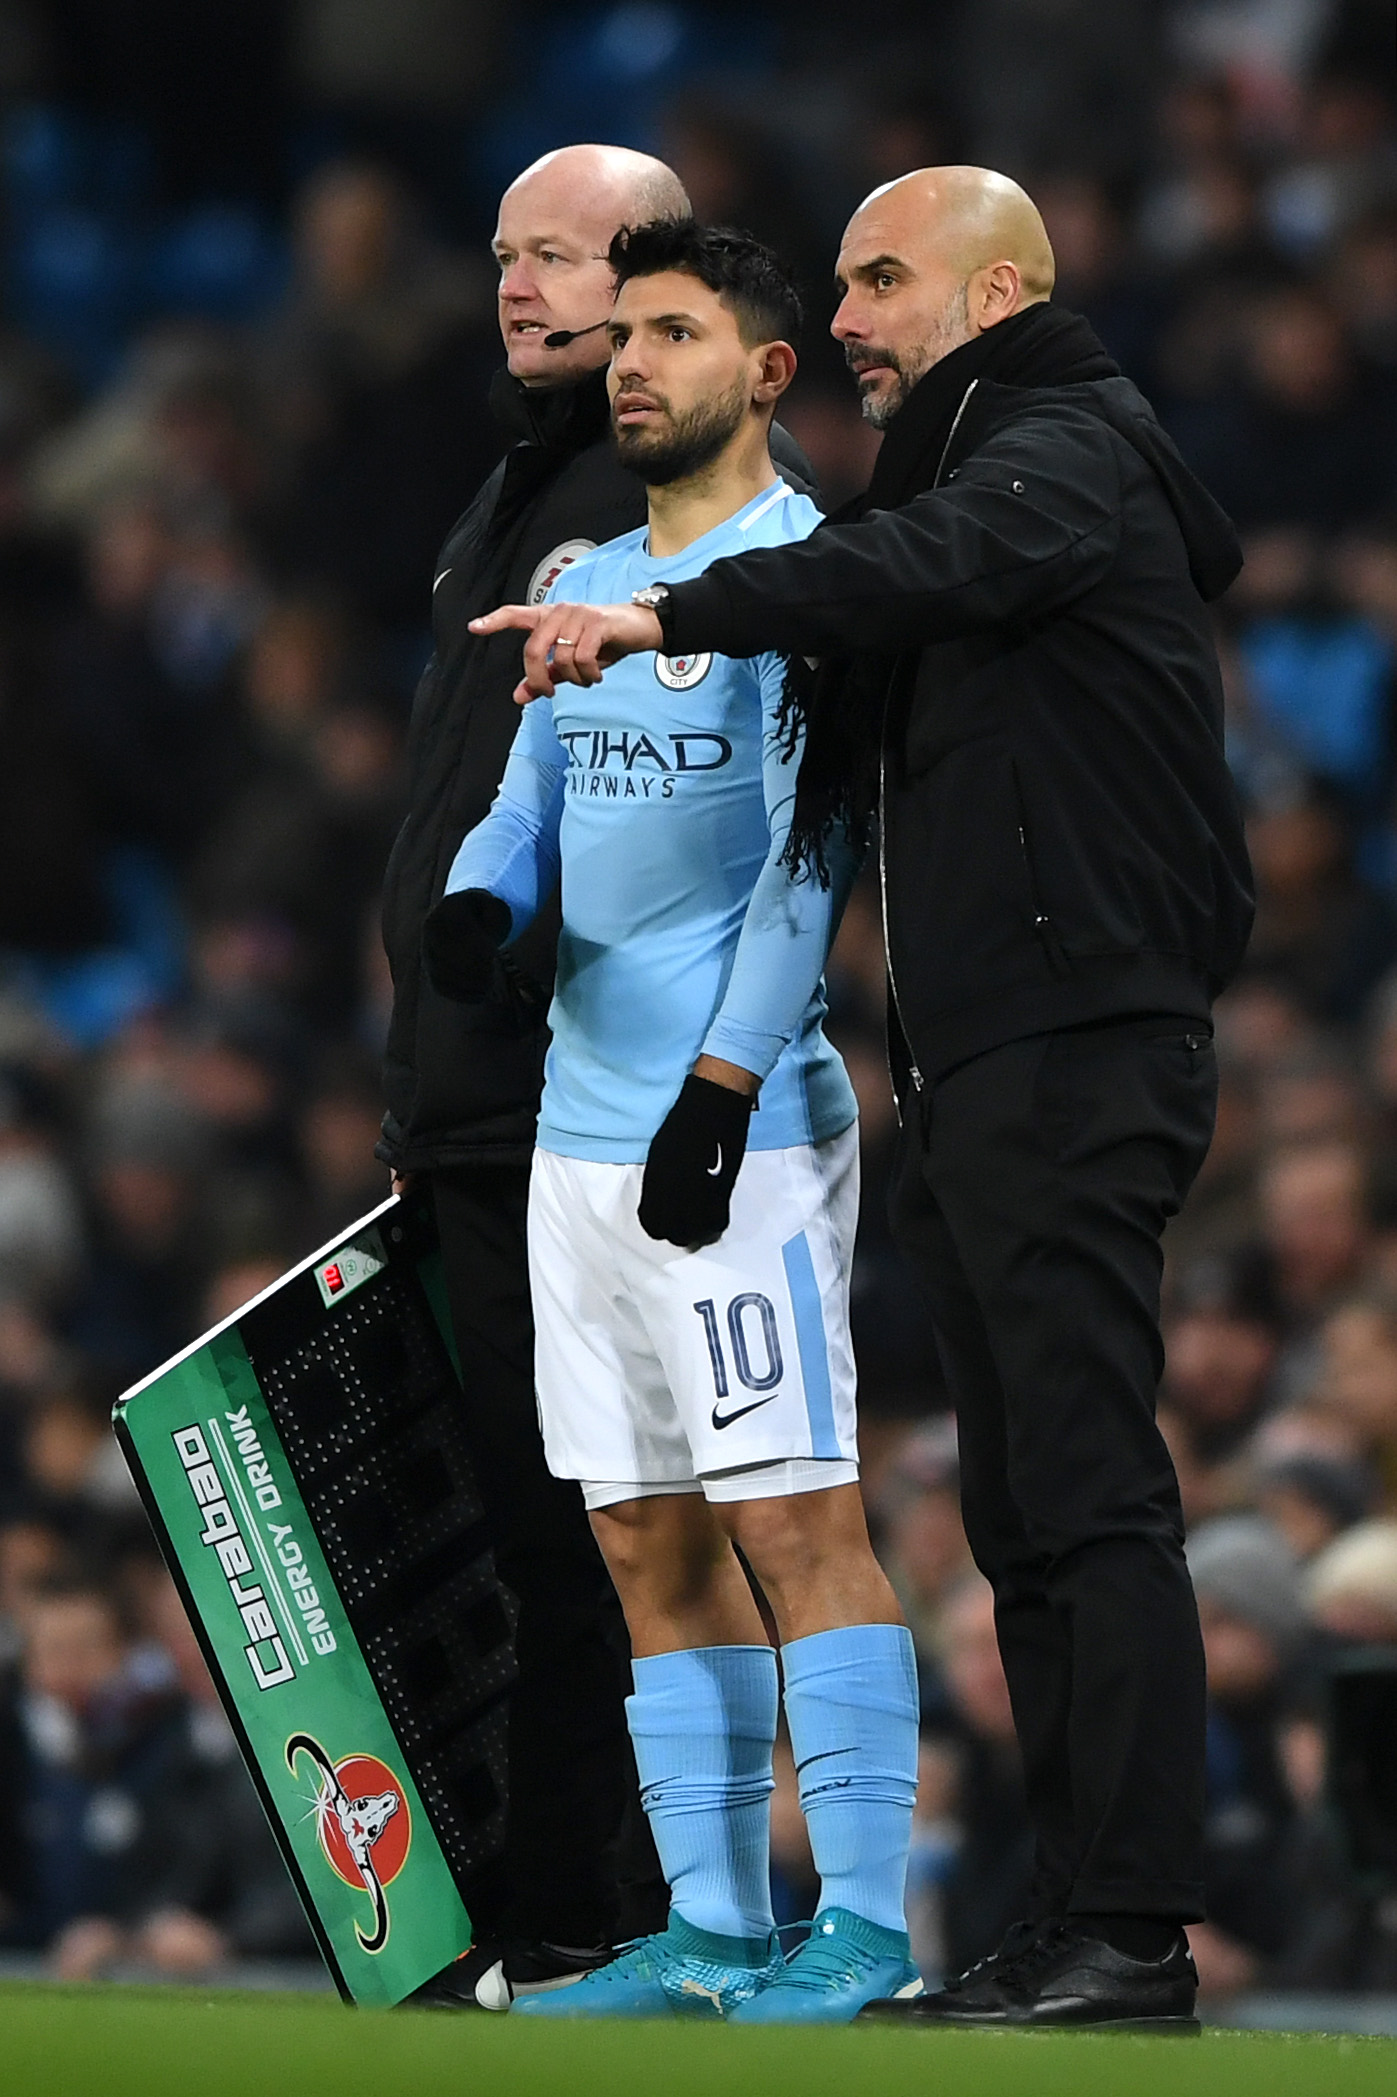 Manchester City star Sergio Aguero and manager Pep Guardiola